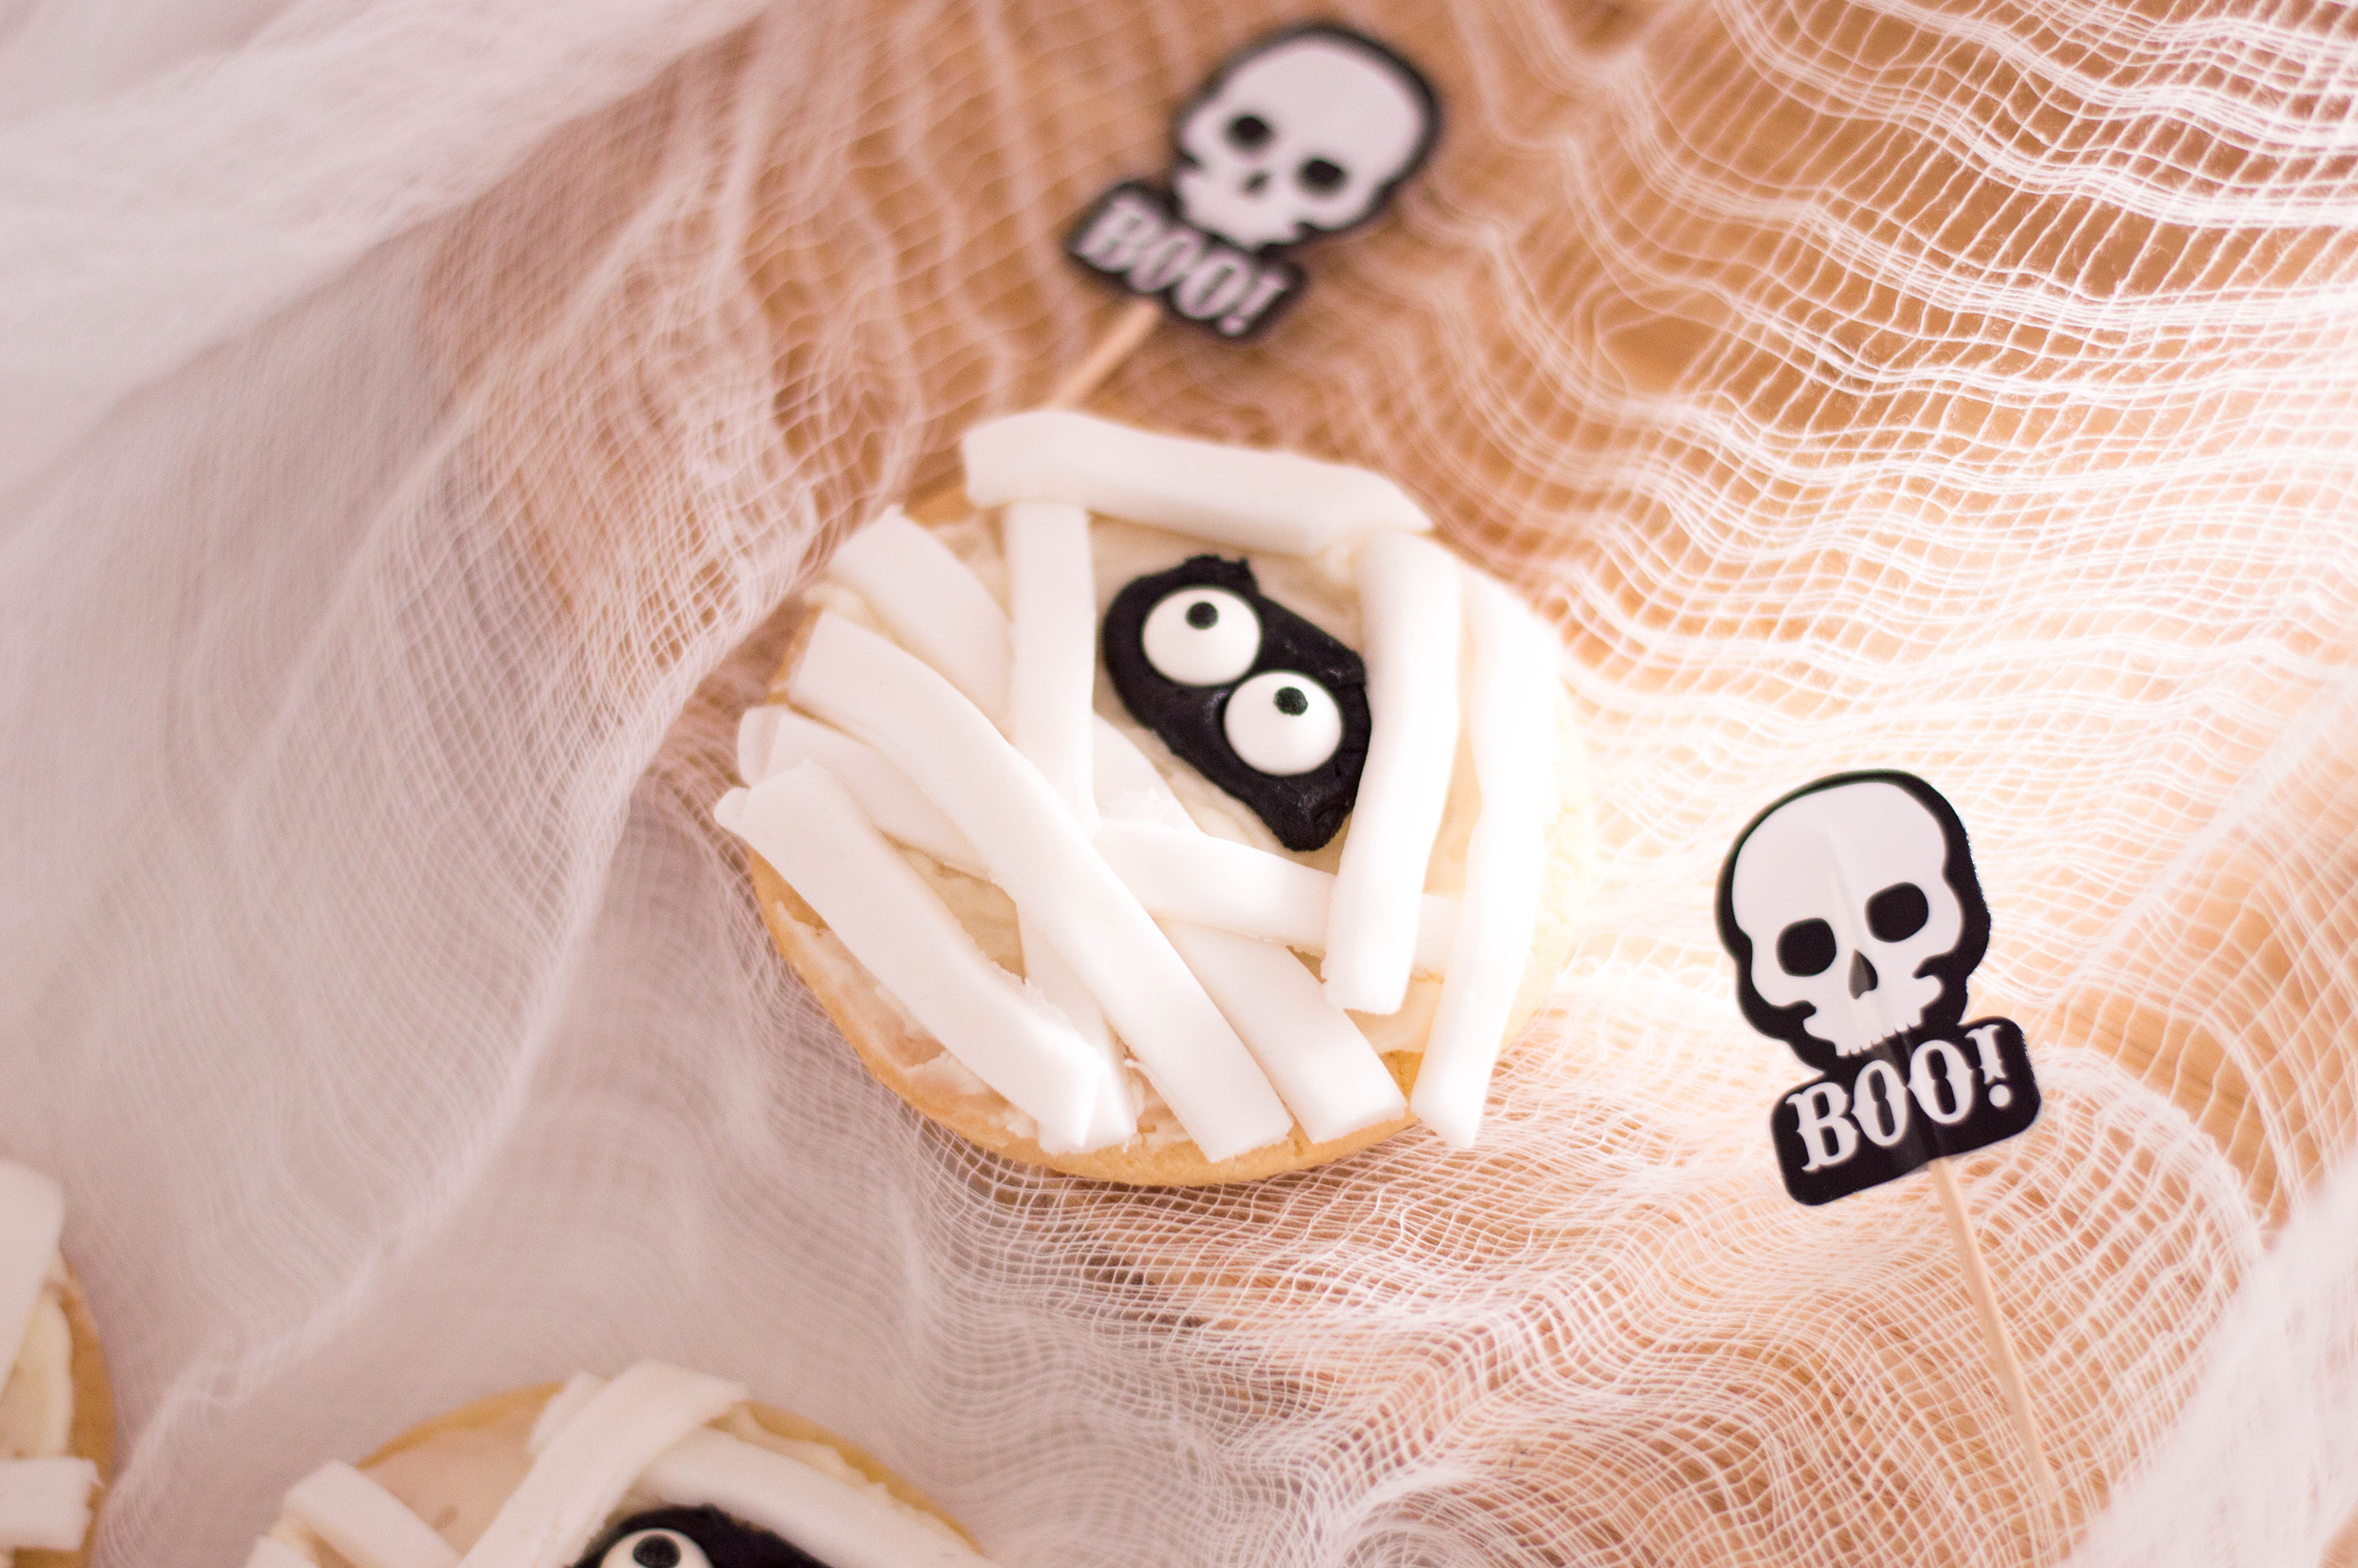 Mummy Sugar Cookies: A Spooky (but Cute!) Halloween Treat